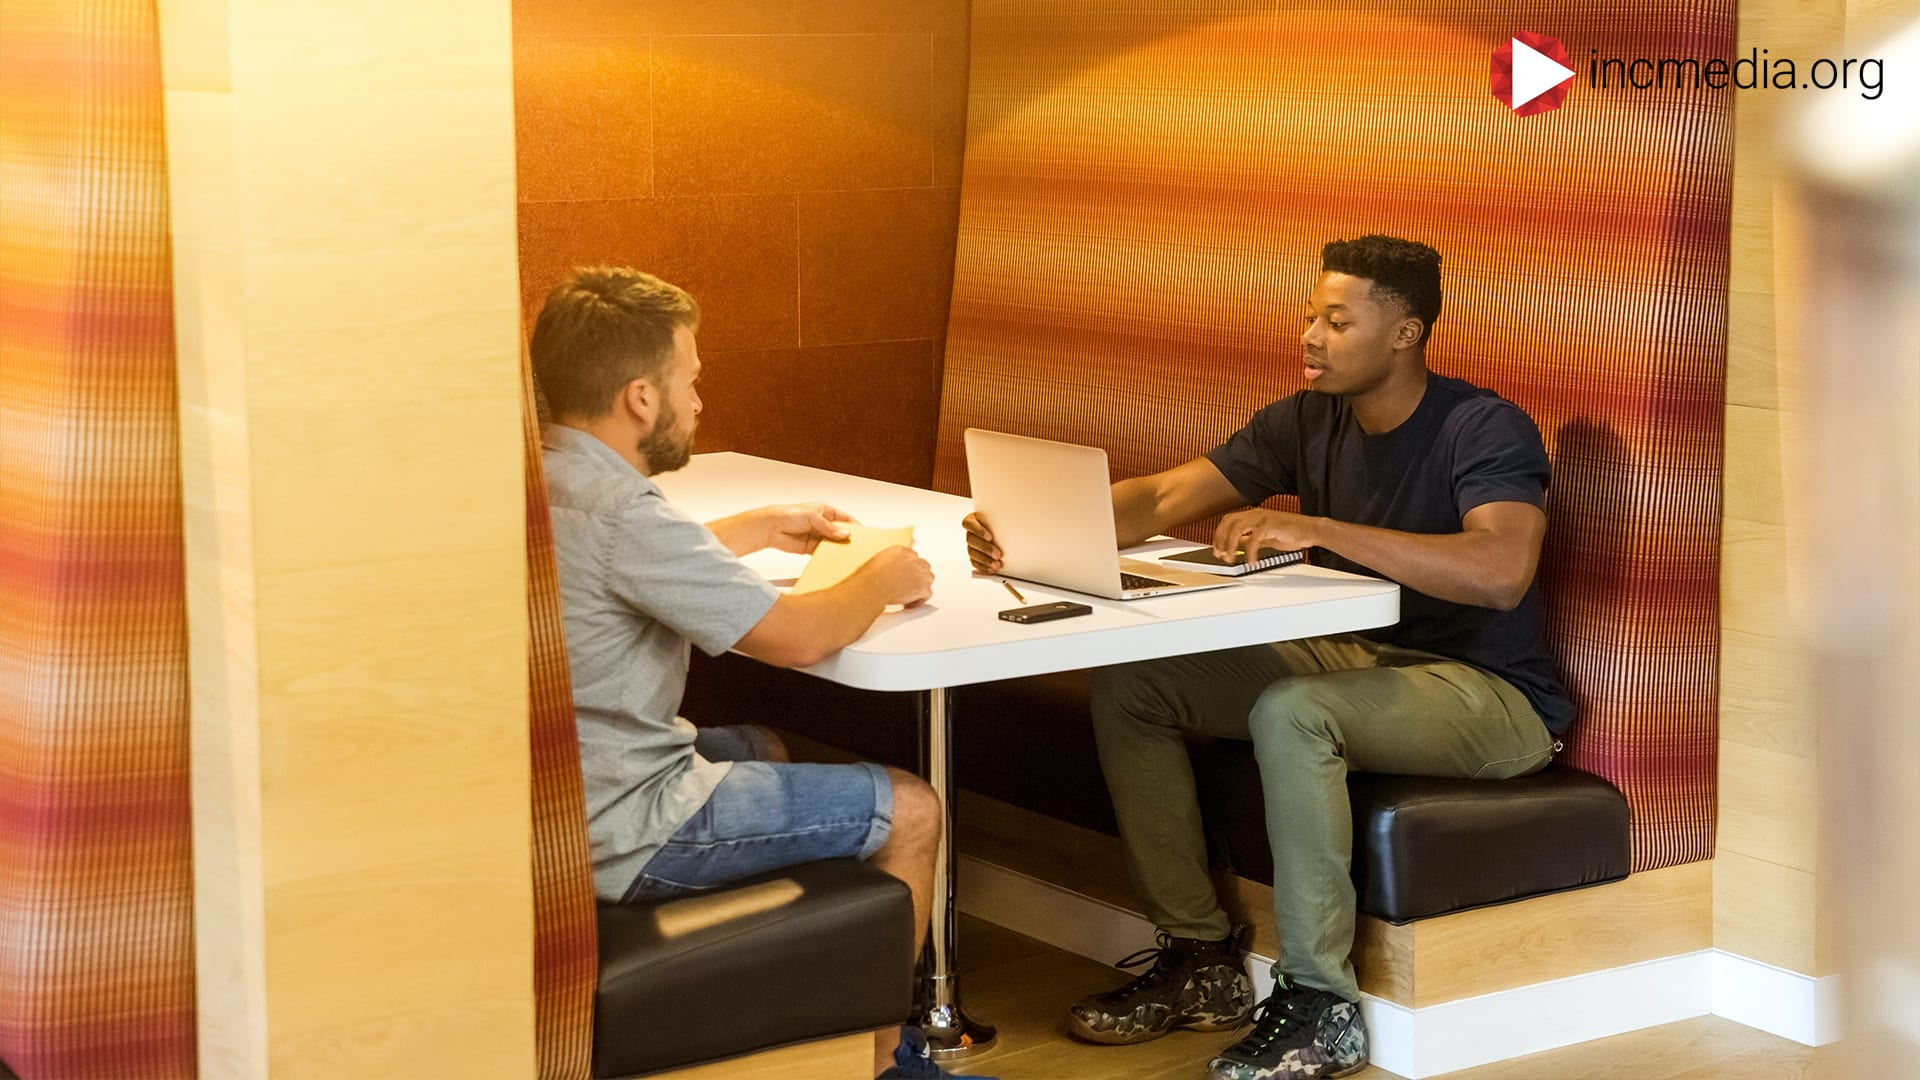 2 men sitting at a table and talking